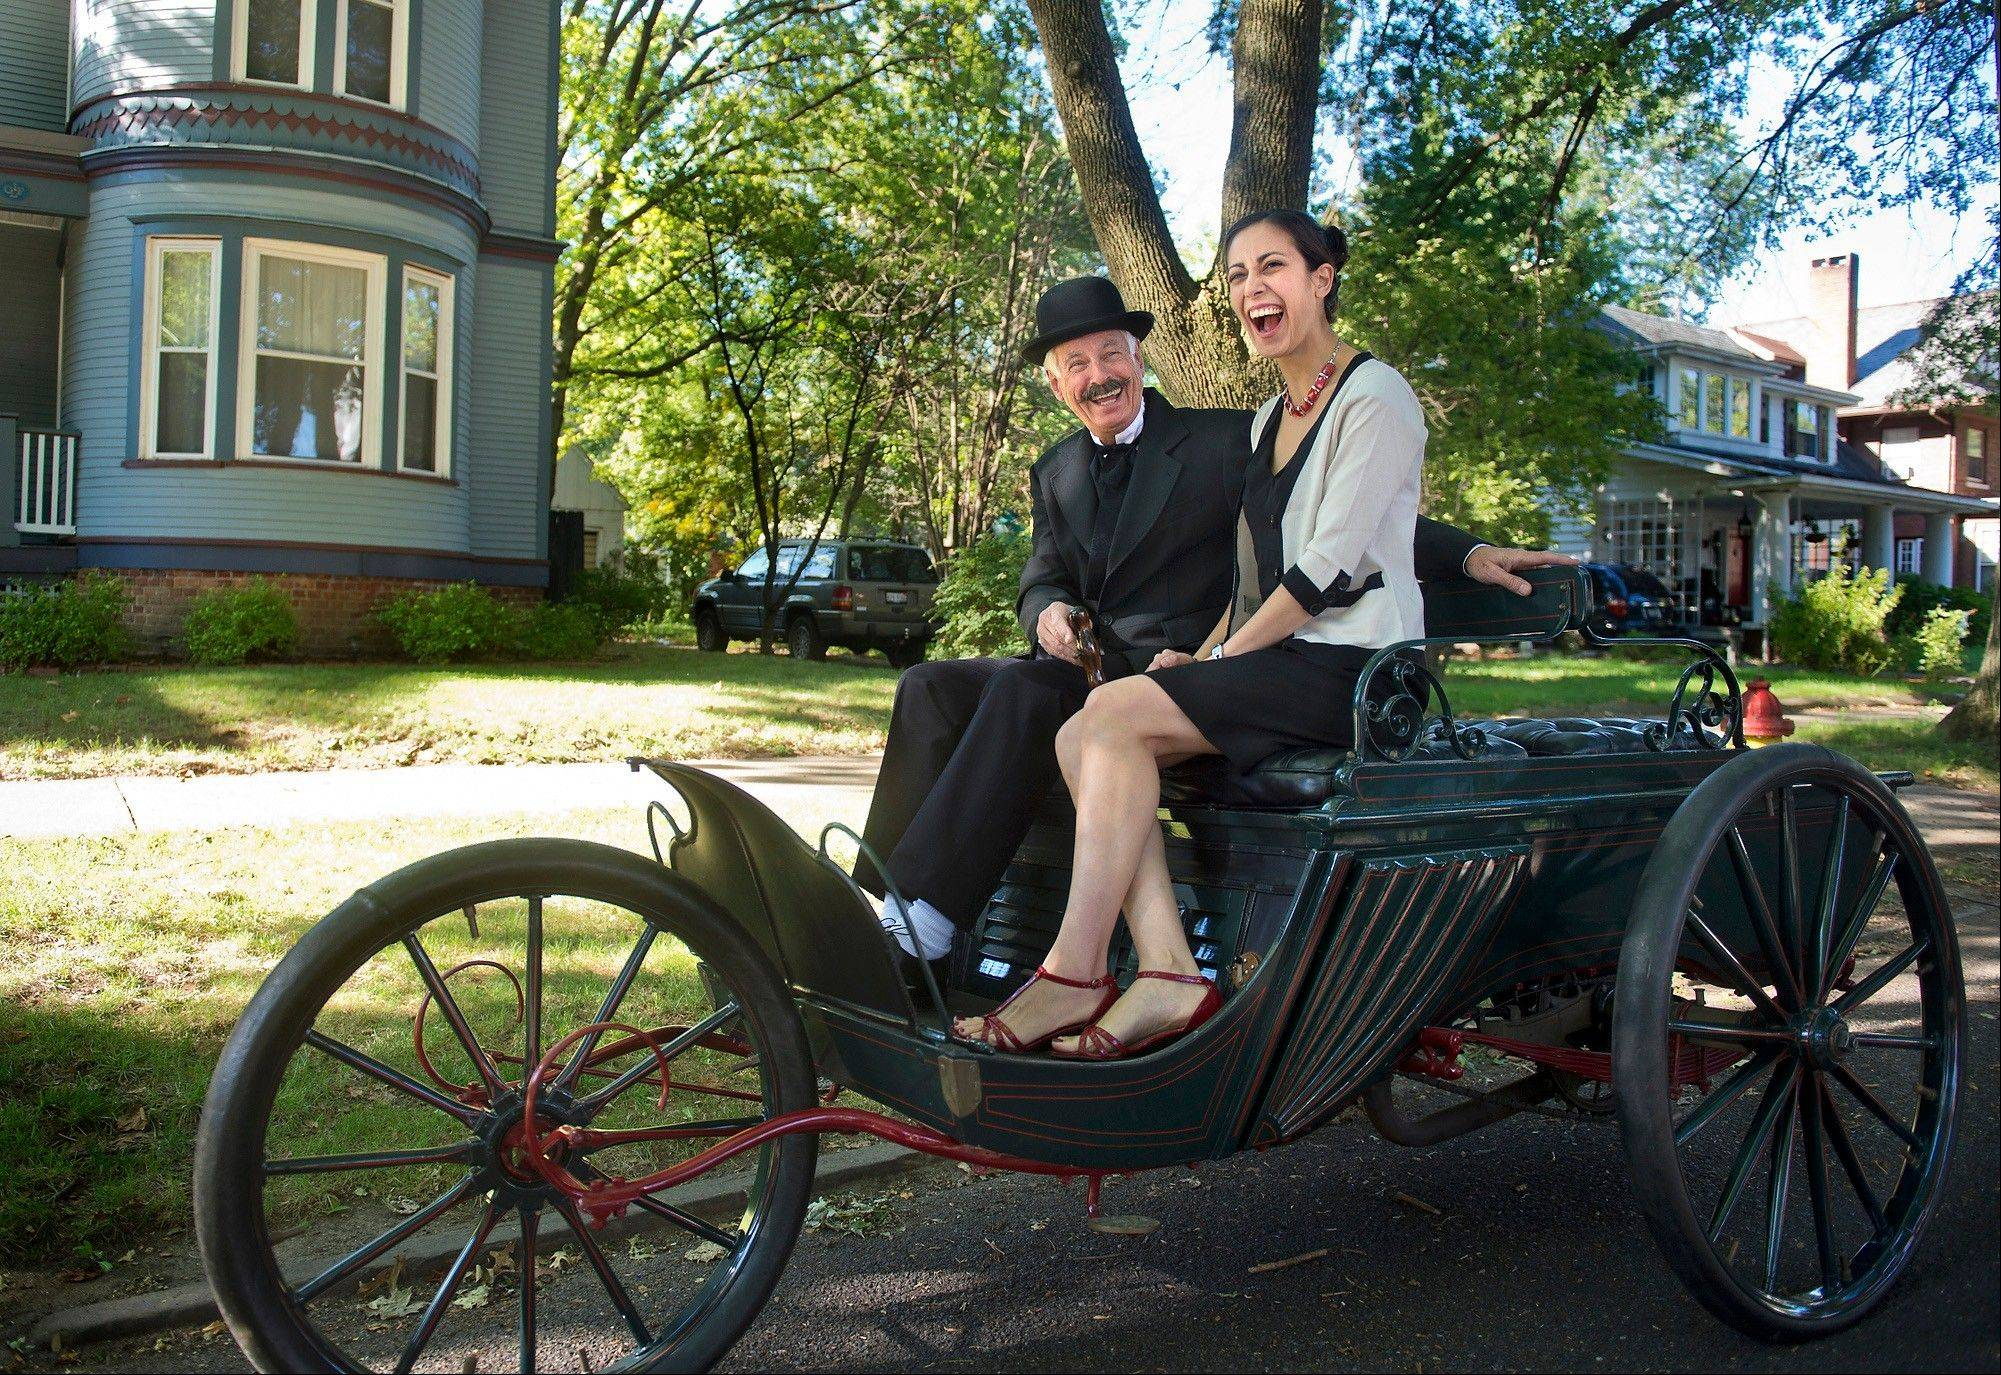 Peoria Regional Museum Society president John Parks, left, laughs with Kelly Kolton as the Duryea Trap, an early gas-powered car built in 1898 in Peoriamade a brief visit back to the place of it's creation.